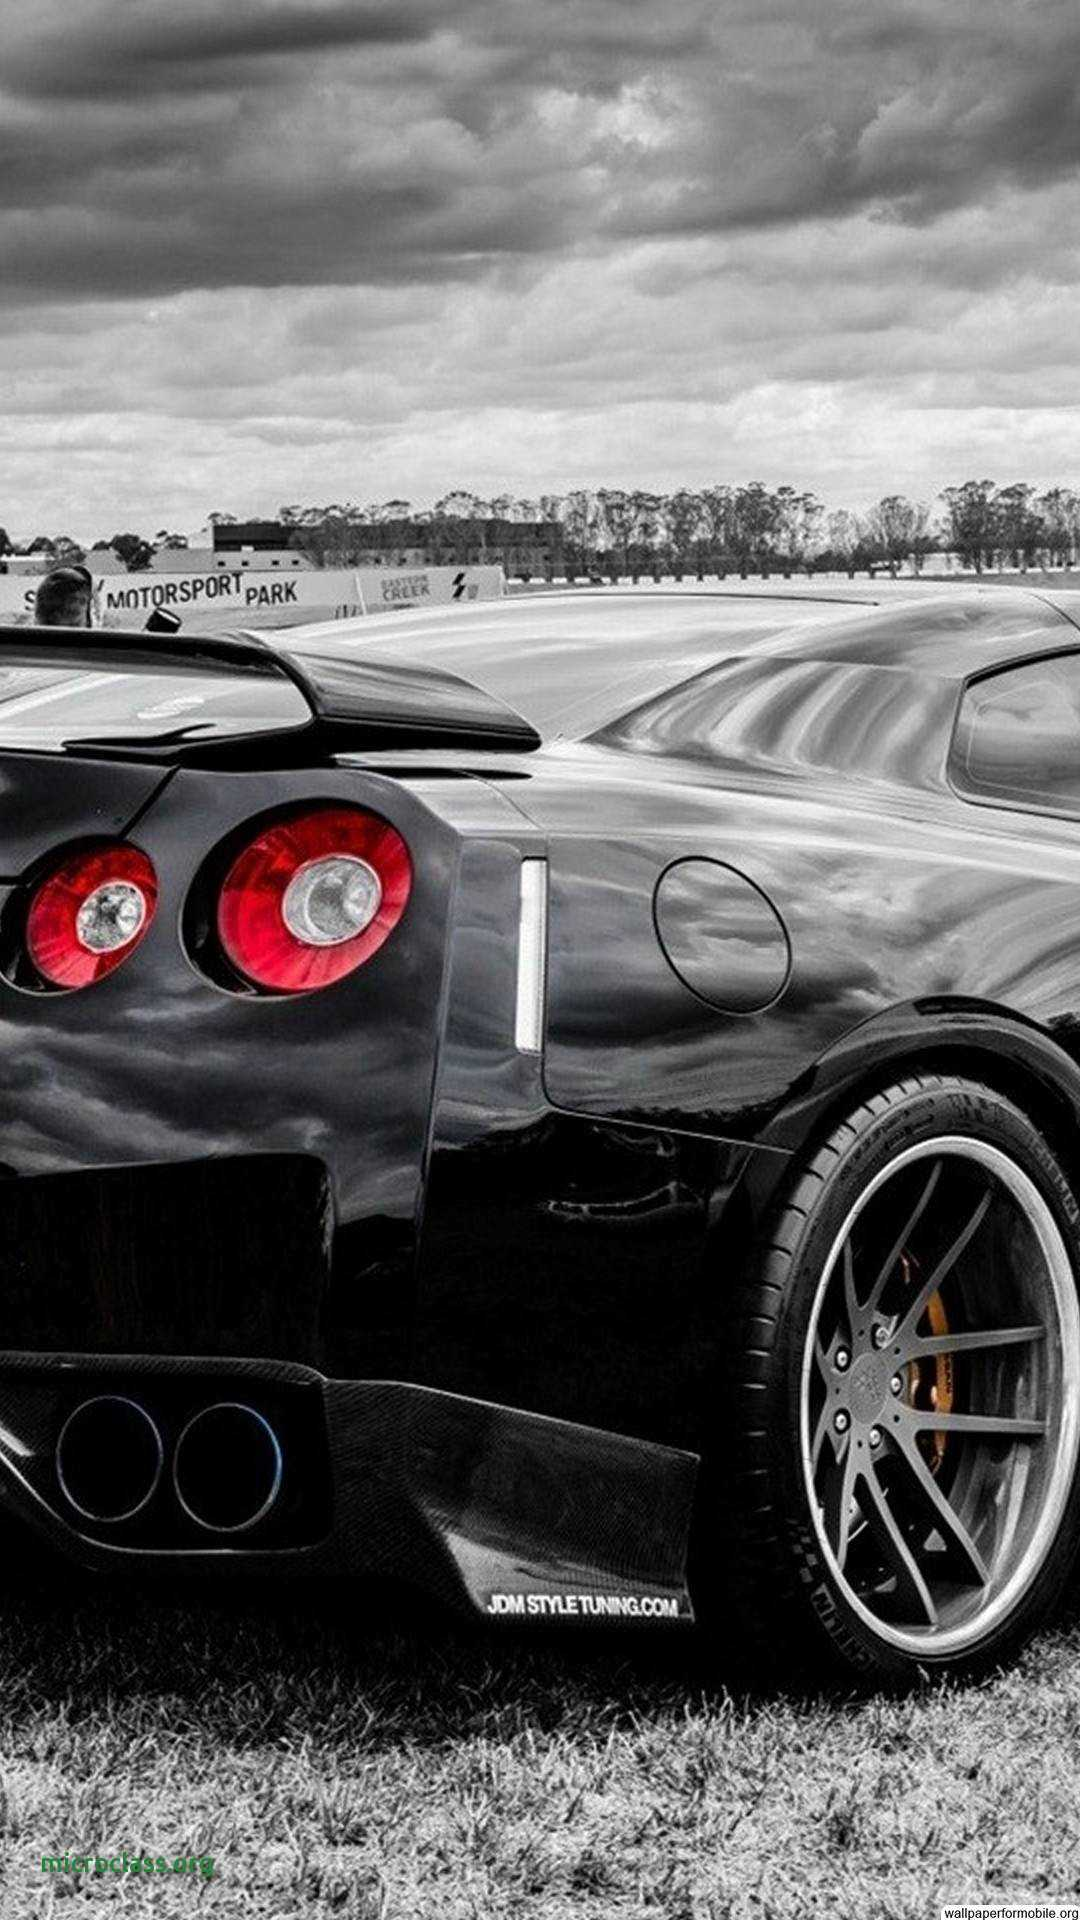 Whether it's your daily commute or a random road trip, your iphone can help you drive, park, and stave off passenger boredom. Jdm Iphone Wallpaper Images Best Of Of Hd Japan Car Nissan Gtr Wallpaper Iphone 1080x1920 Wallpaper Teahub Io